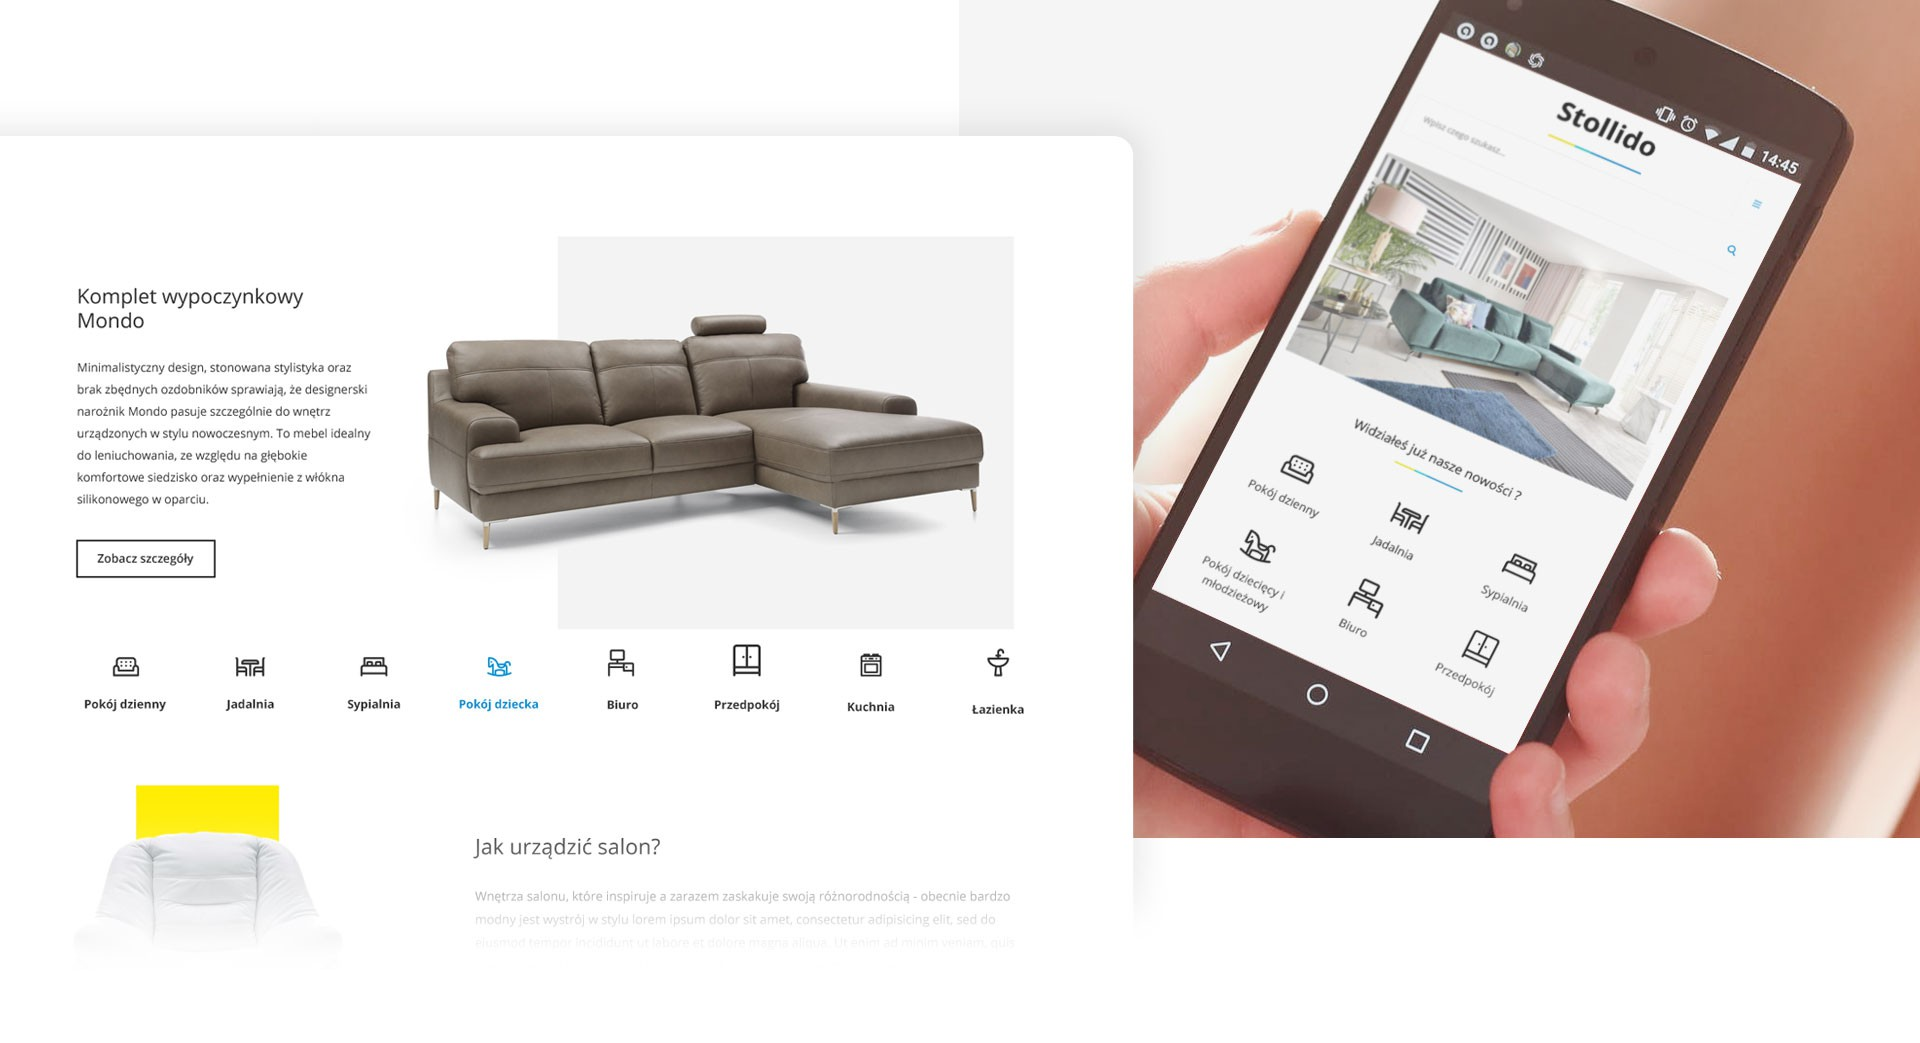 Furniture catalog  with hundreds of products